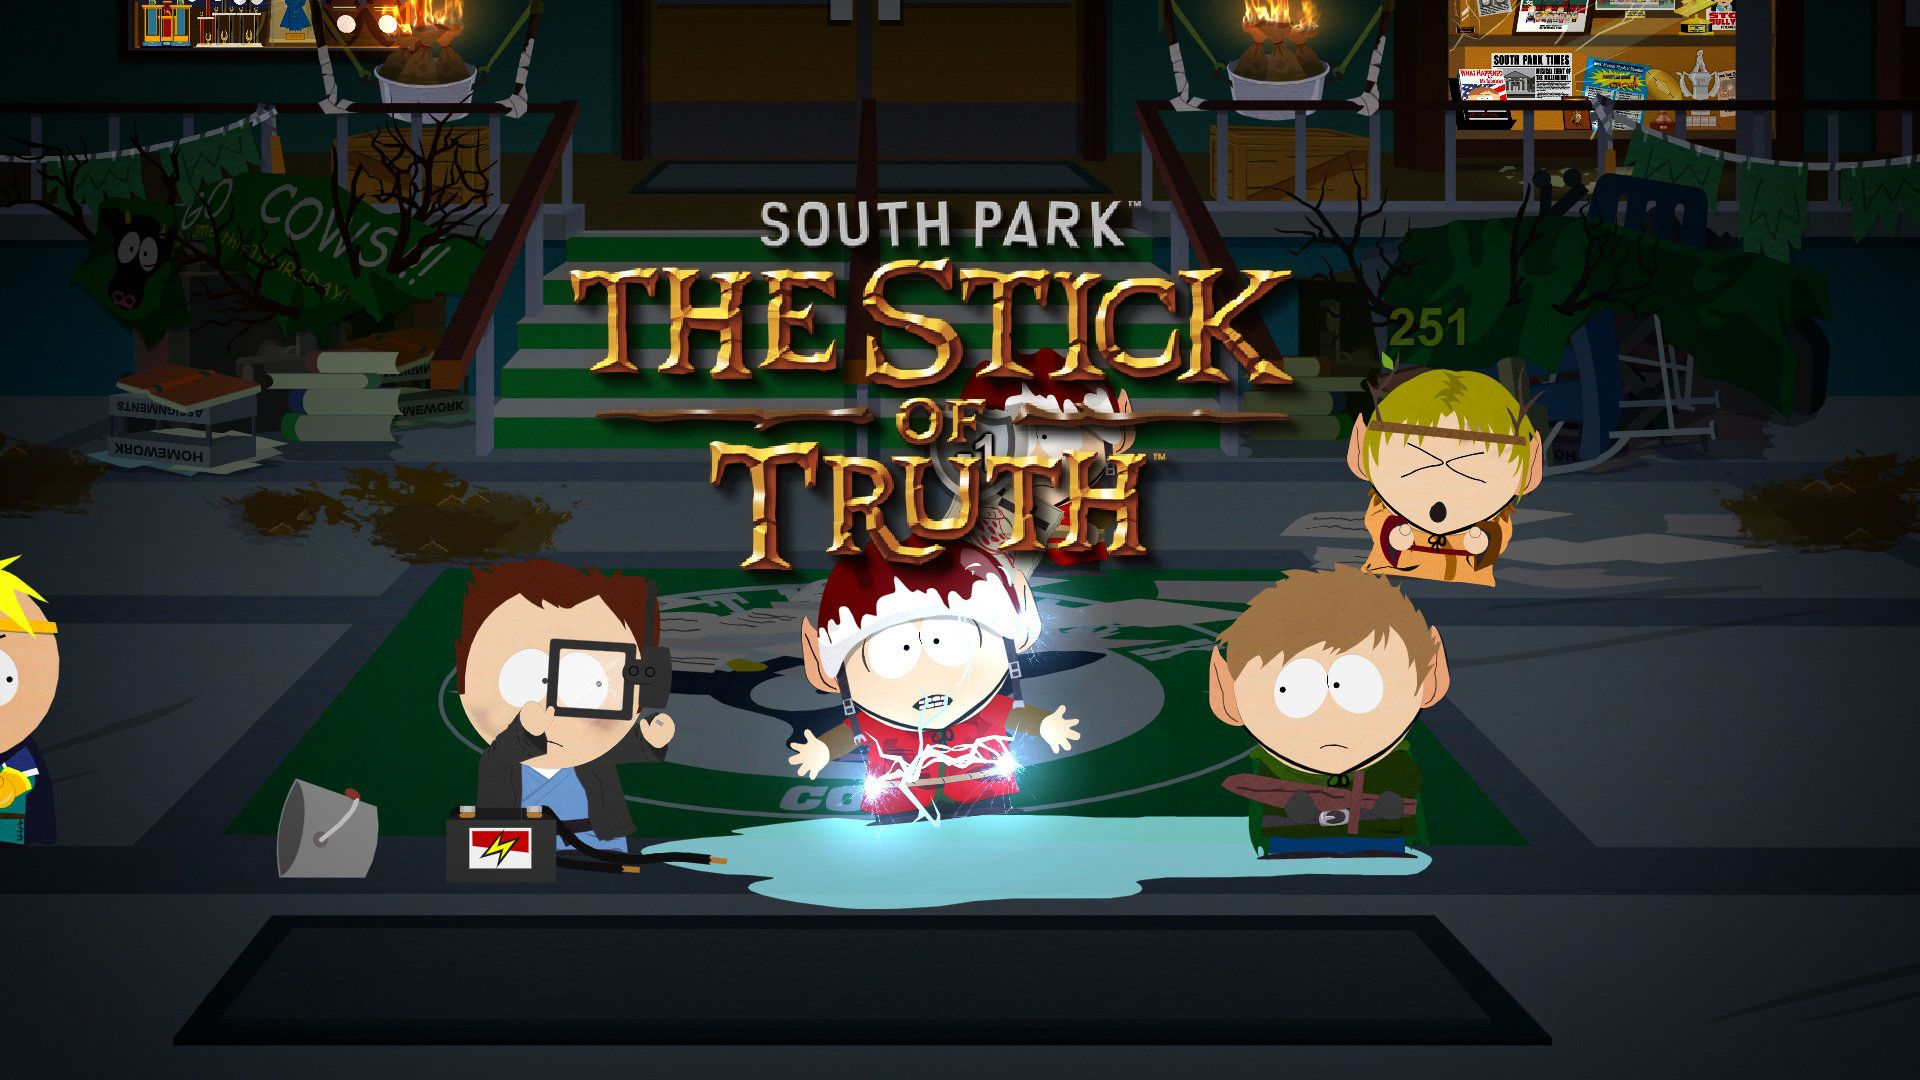 South Park: The Stick of Truth Sistem Gereksinimleri